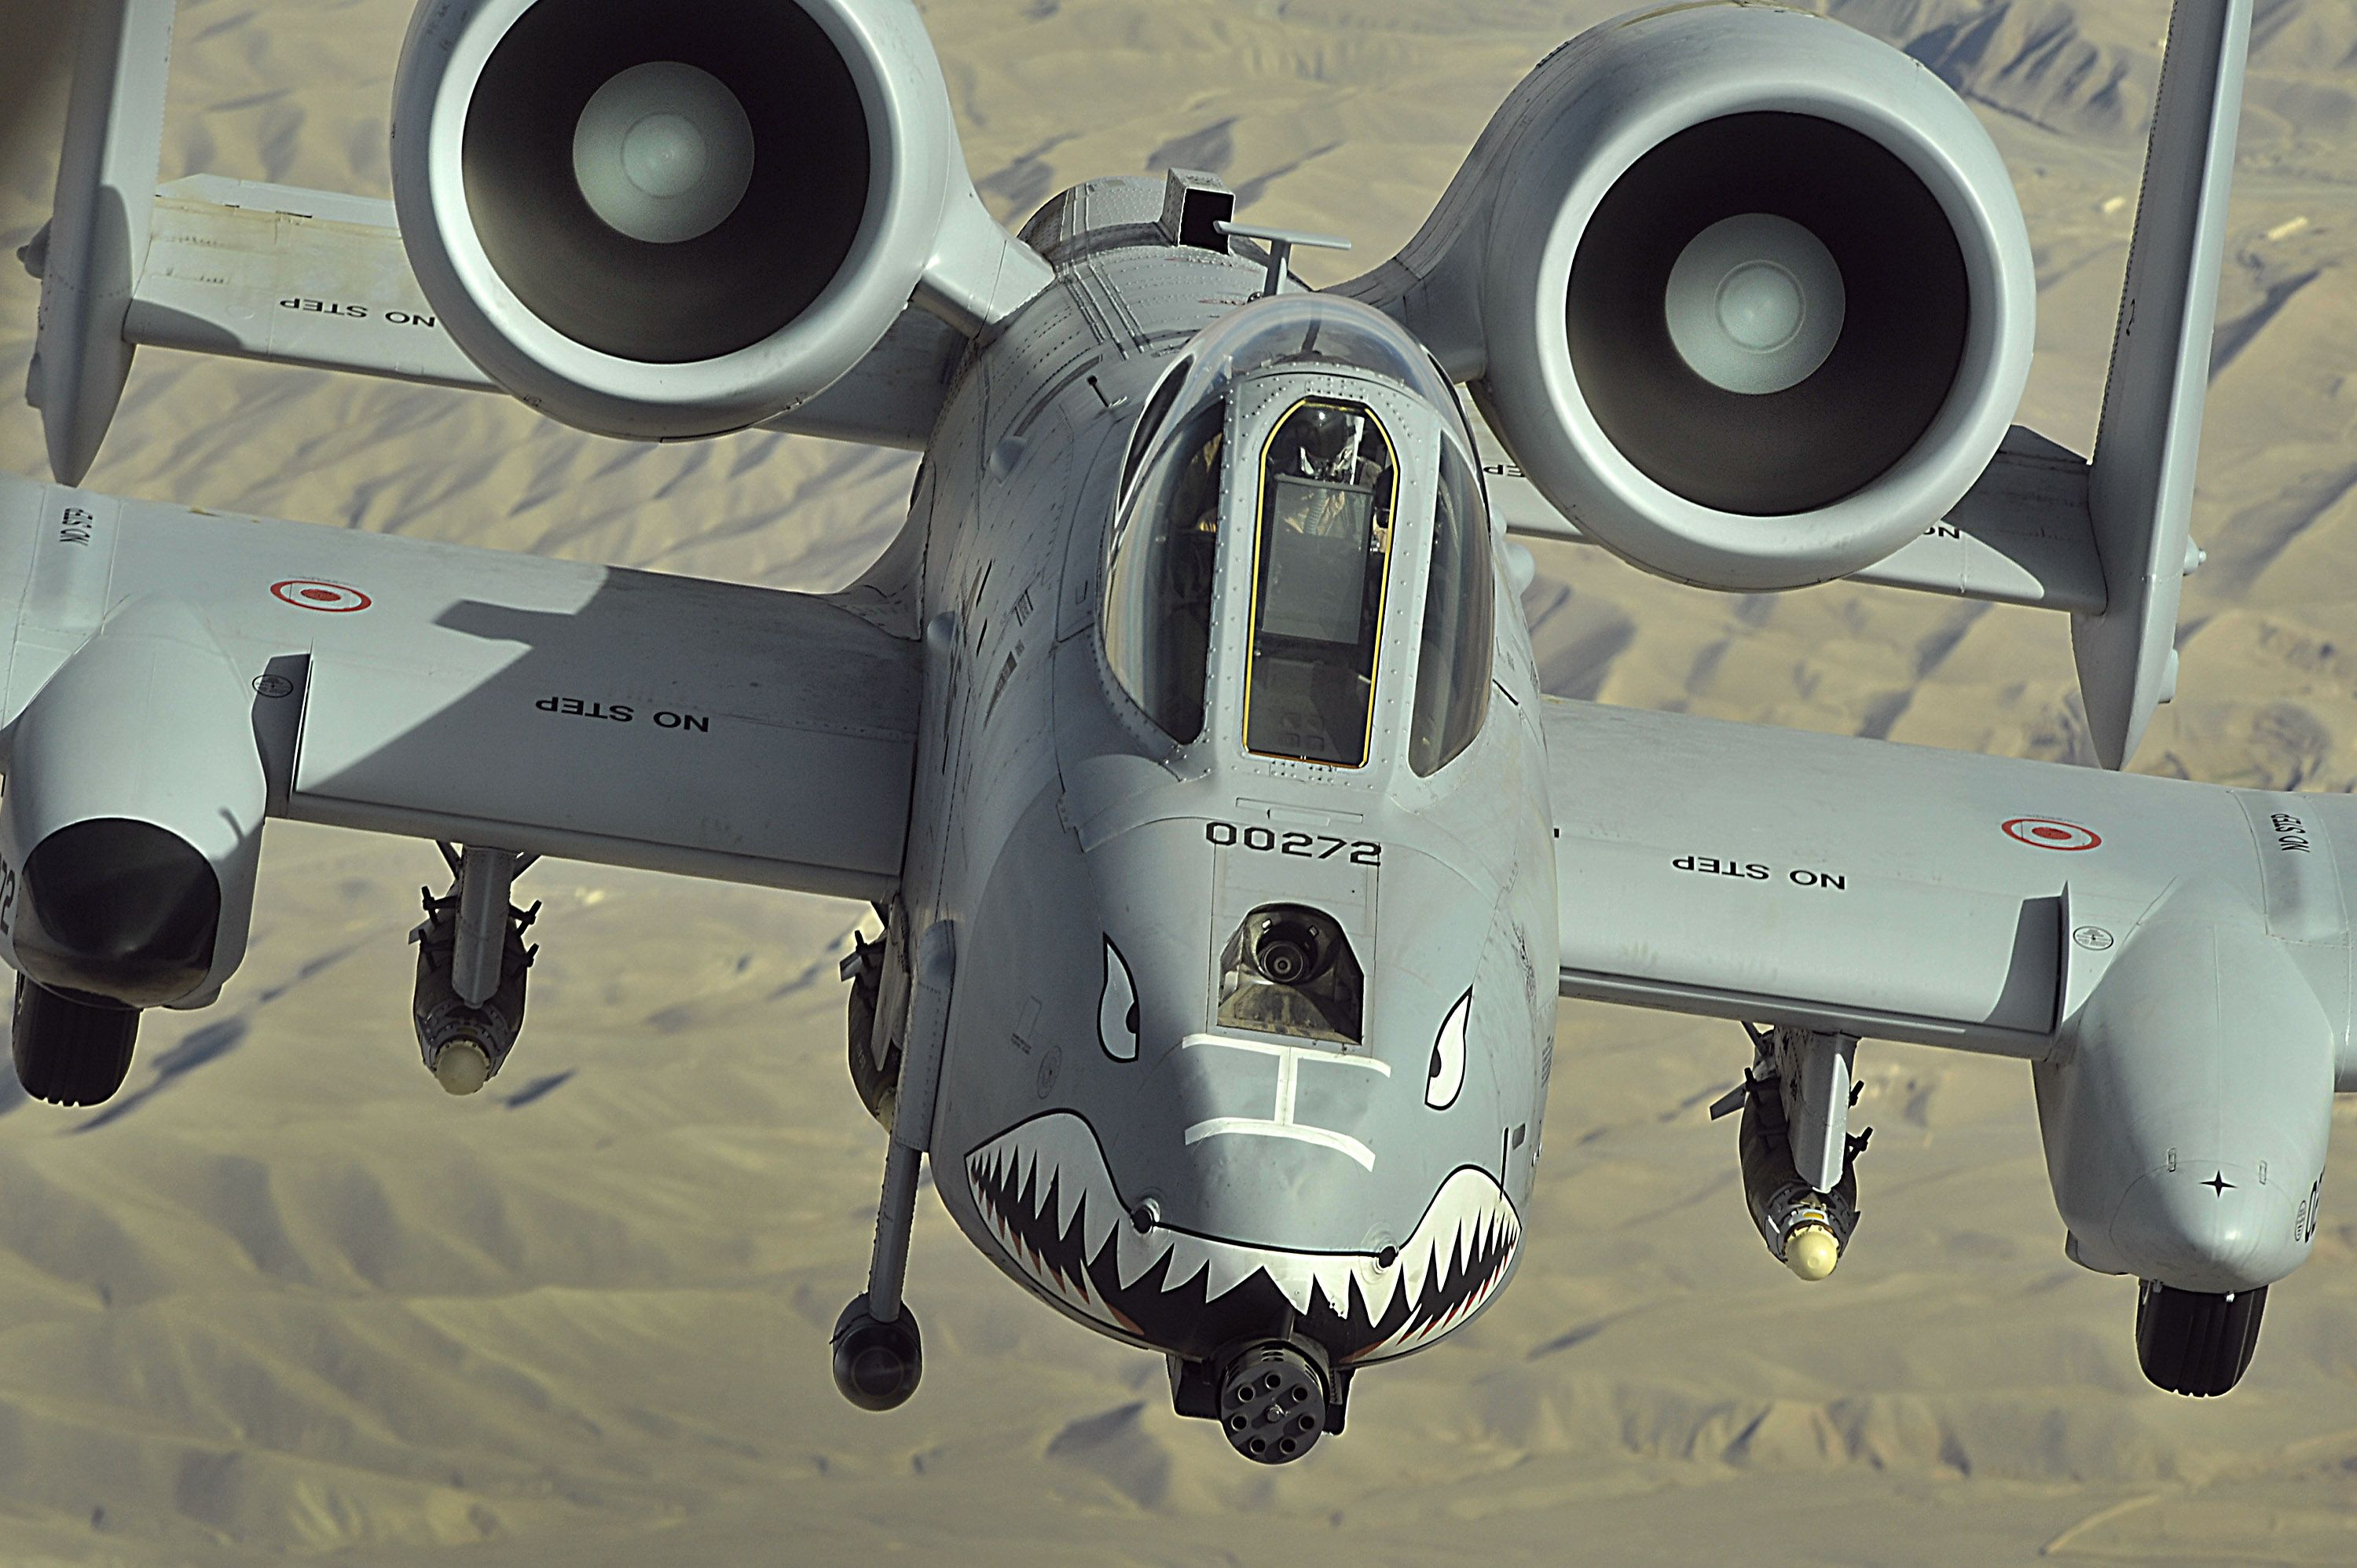 Why the A-10 Warthog Is Such a Badass Plane